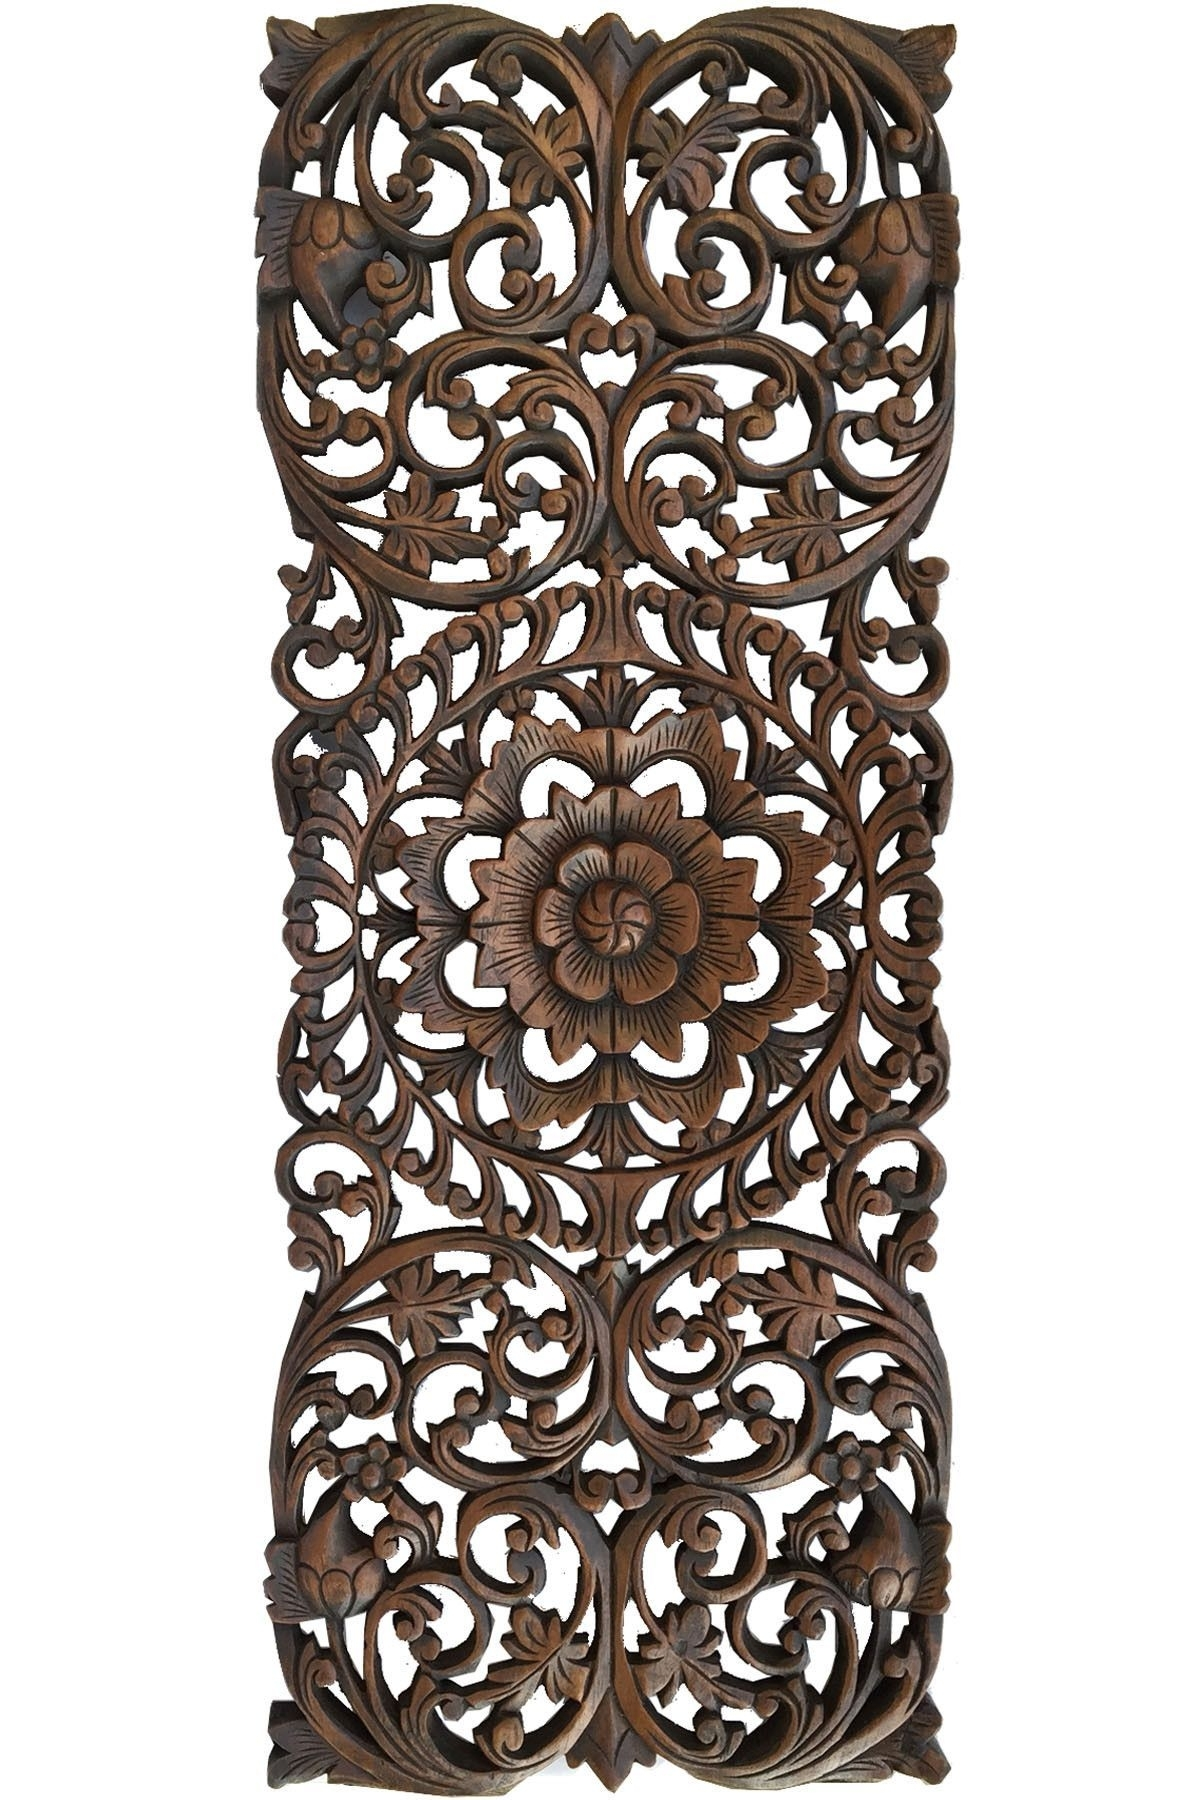 Floral Tropical Carved Wood Wall Panel. Asian Wall Art Home Decor regarding Carved Wood Wall Art (Image 12 of 20)